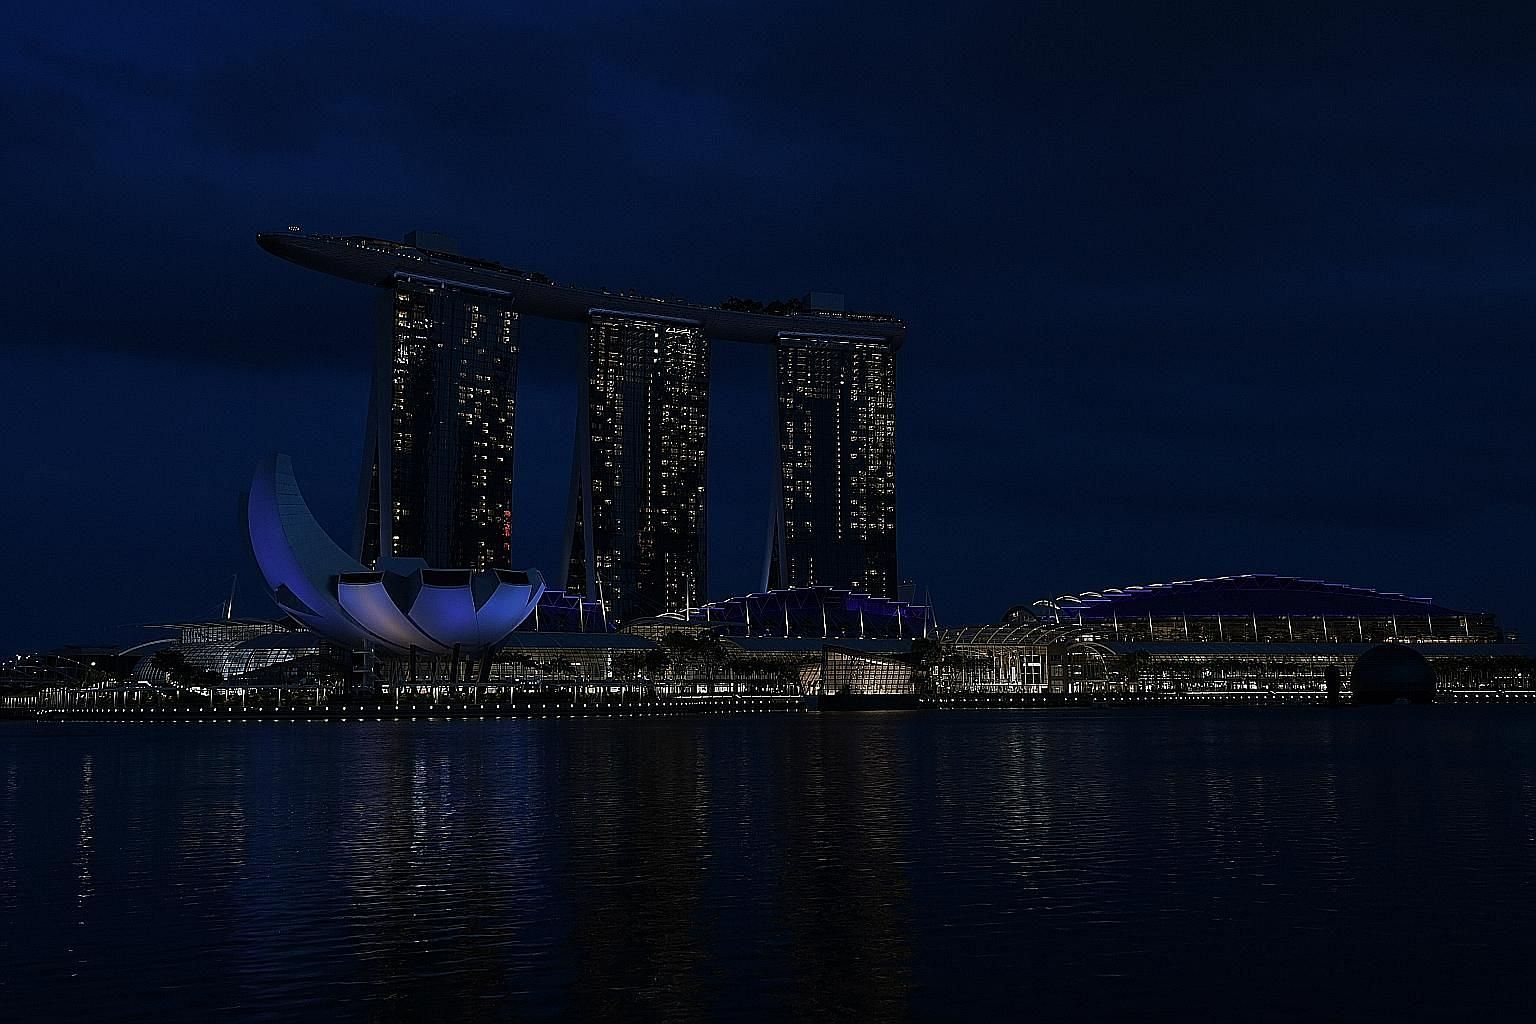 The Esplanade was one of more than 150 landmarks and buildings that took part in Earth Hour 2020 yesterday by turning off their lights for an hour at 8.30pm. It was lights out for landmarks such as Marina Bay Sands to mark the start of Earth Hour 202